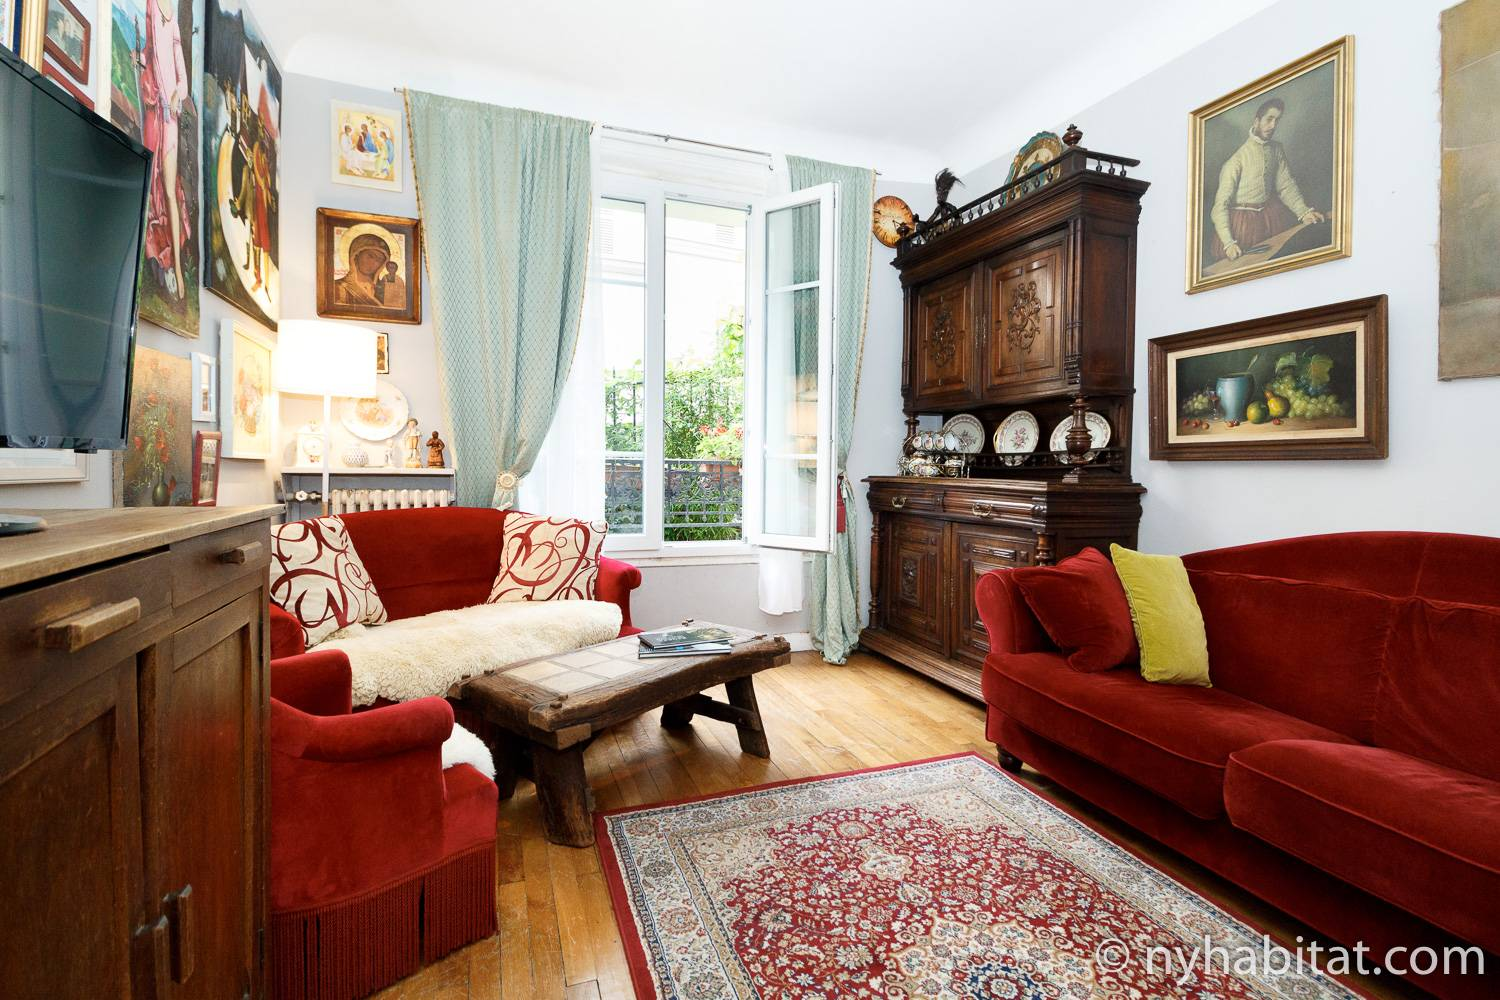 Image of the living room in Montmartre, Paris vacation rental PA-3387 with its red furniture and vintage accents.